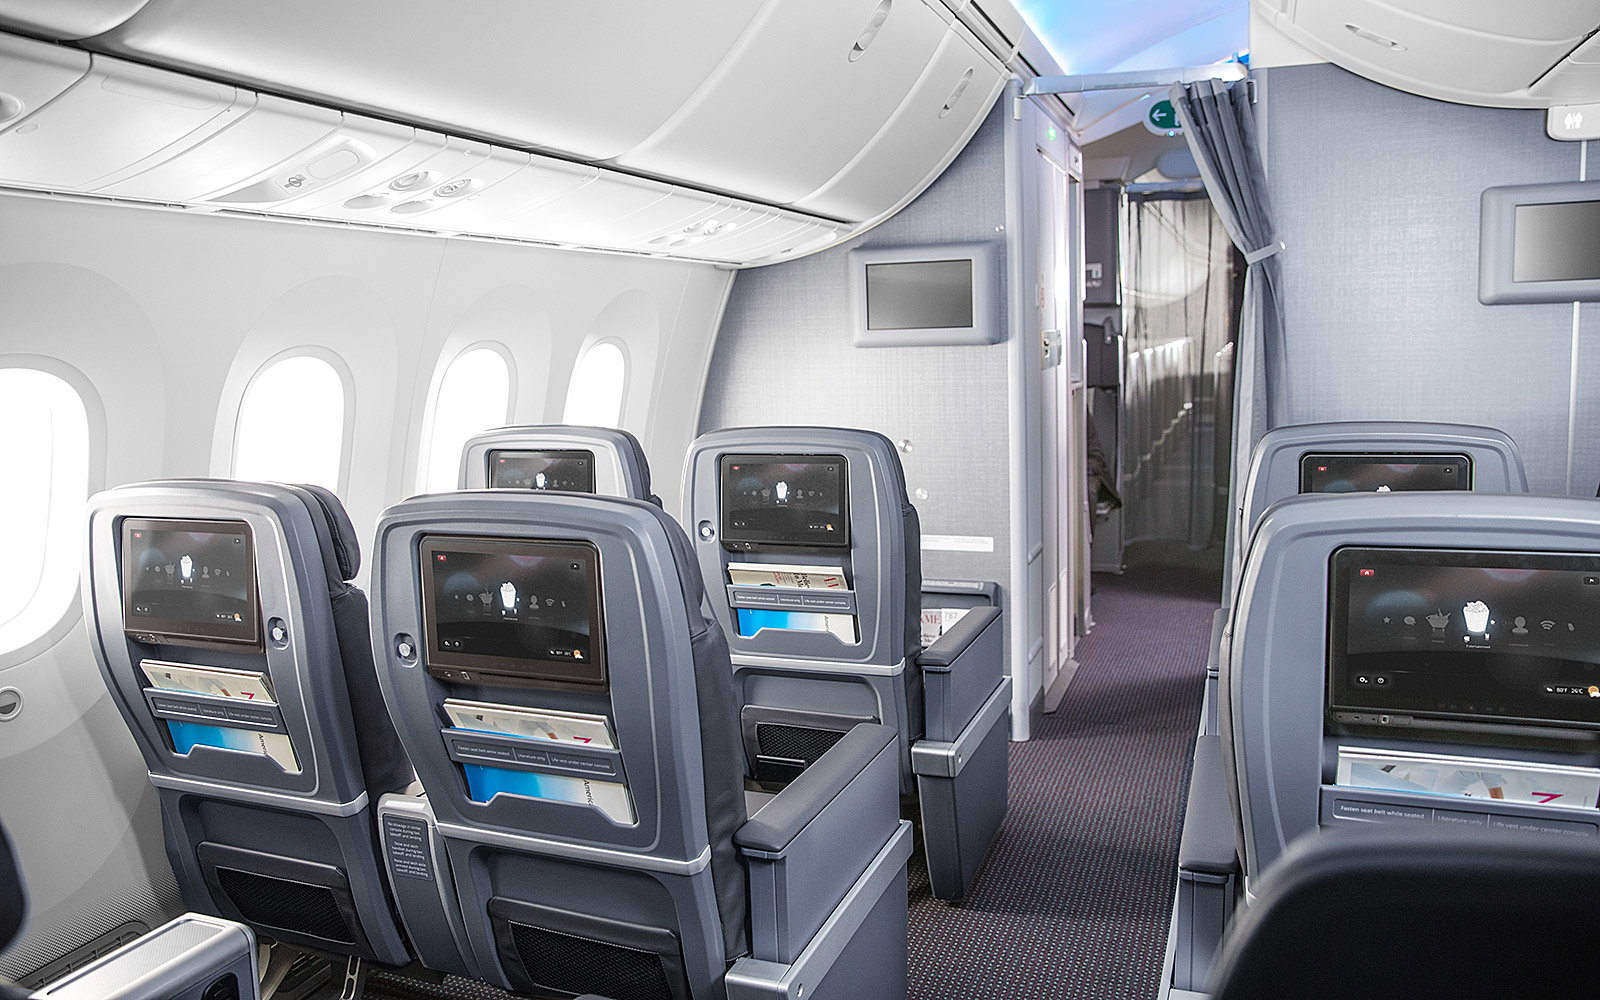 How To Get The Most Out Of Airlines Premium Economy